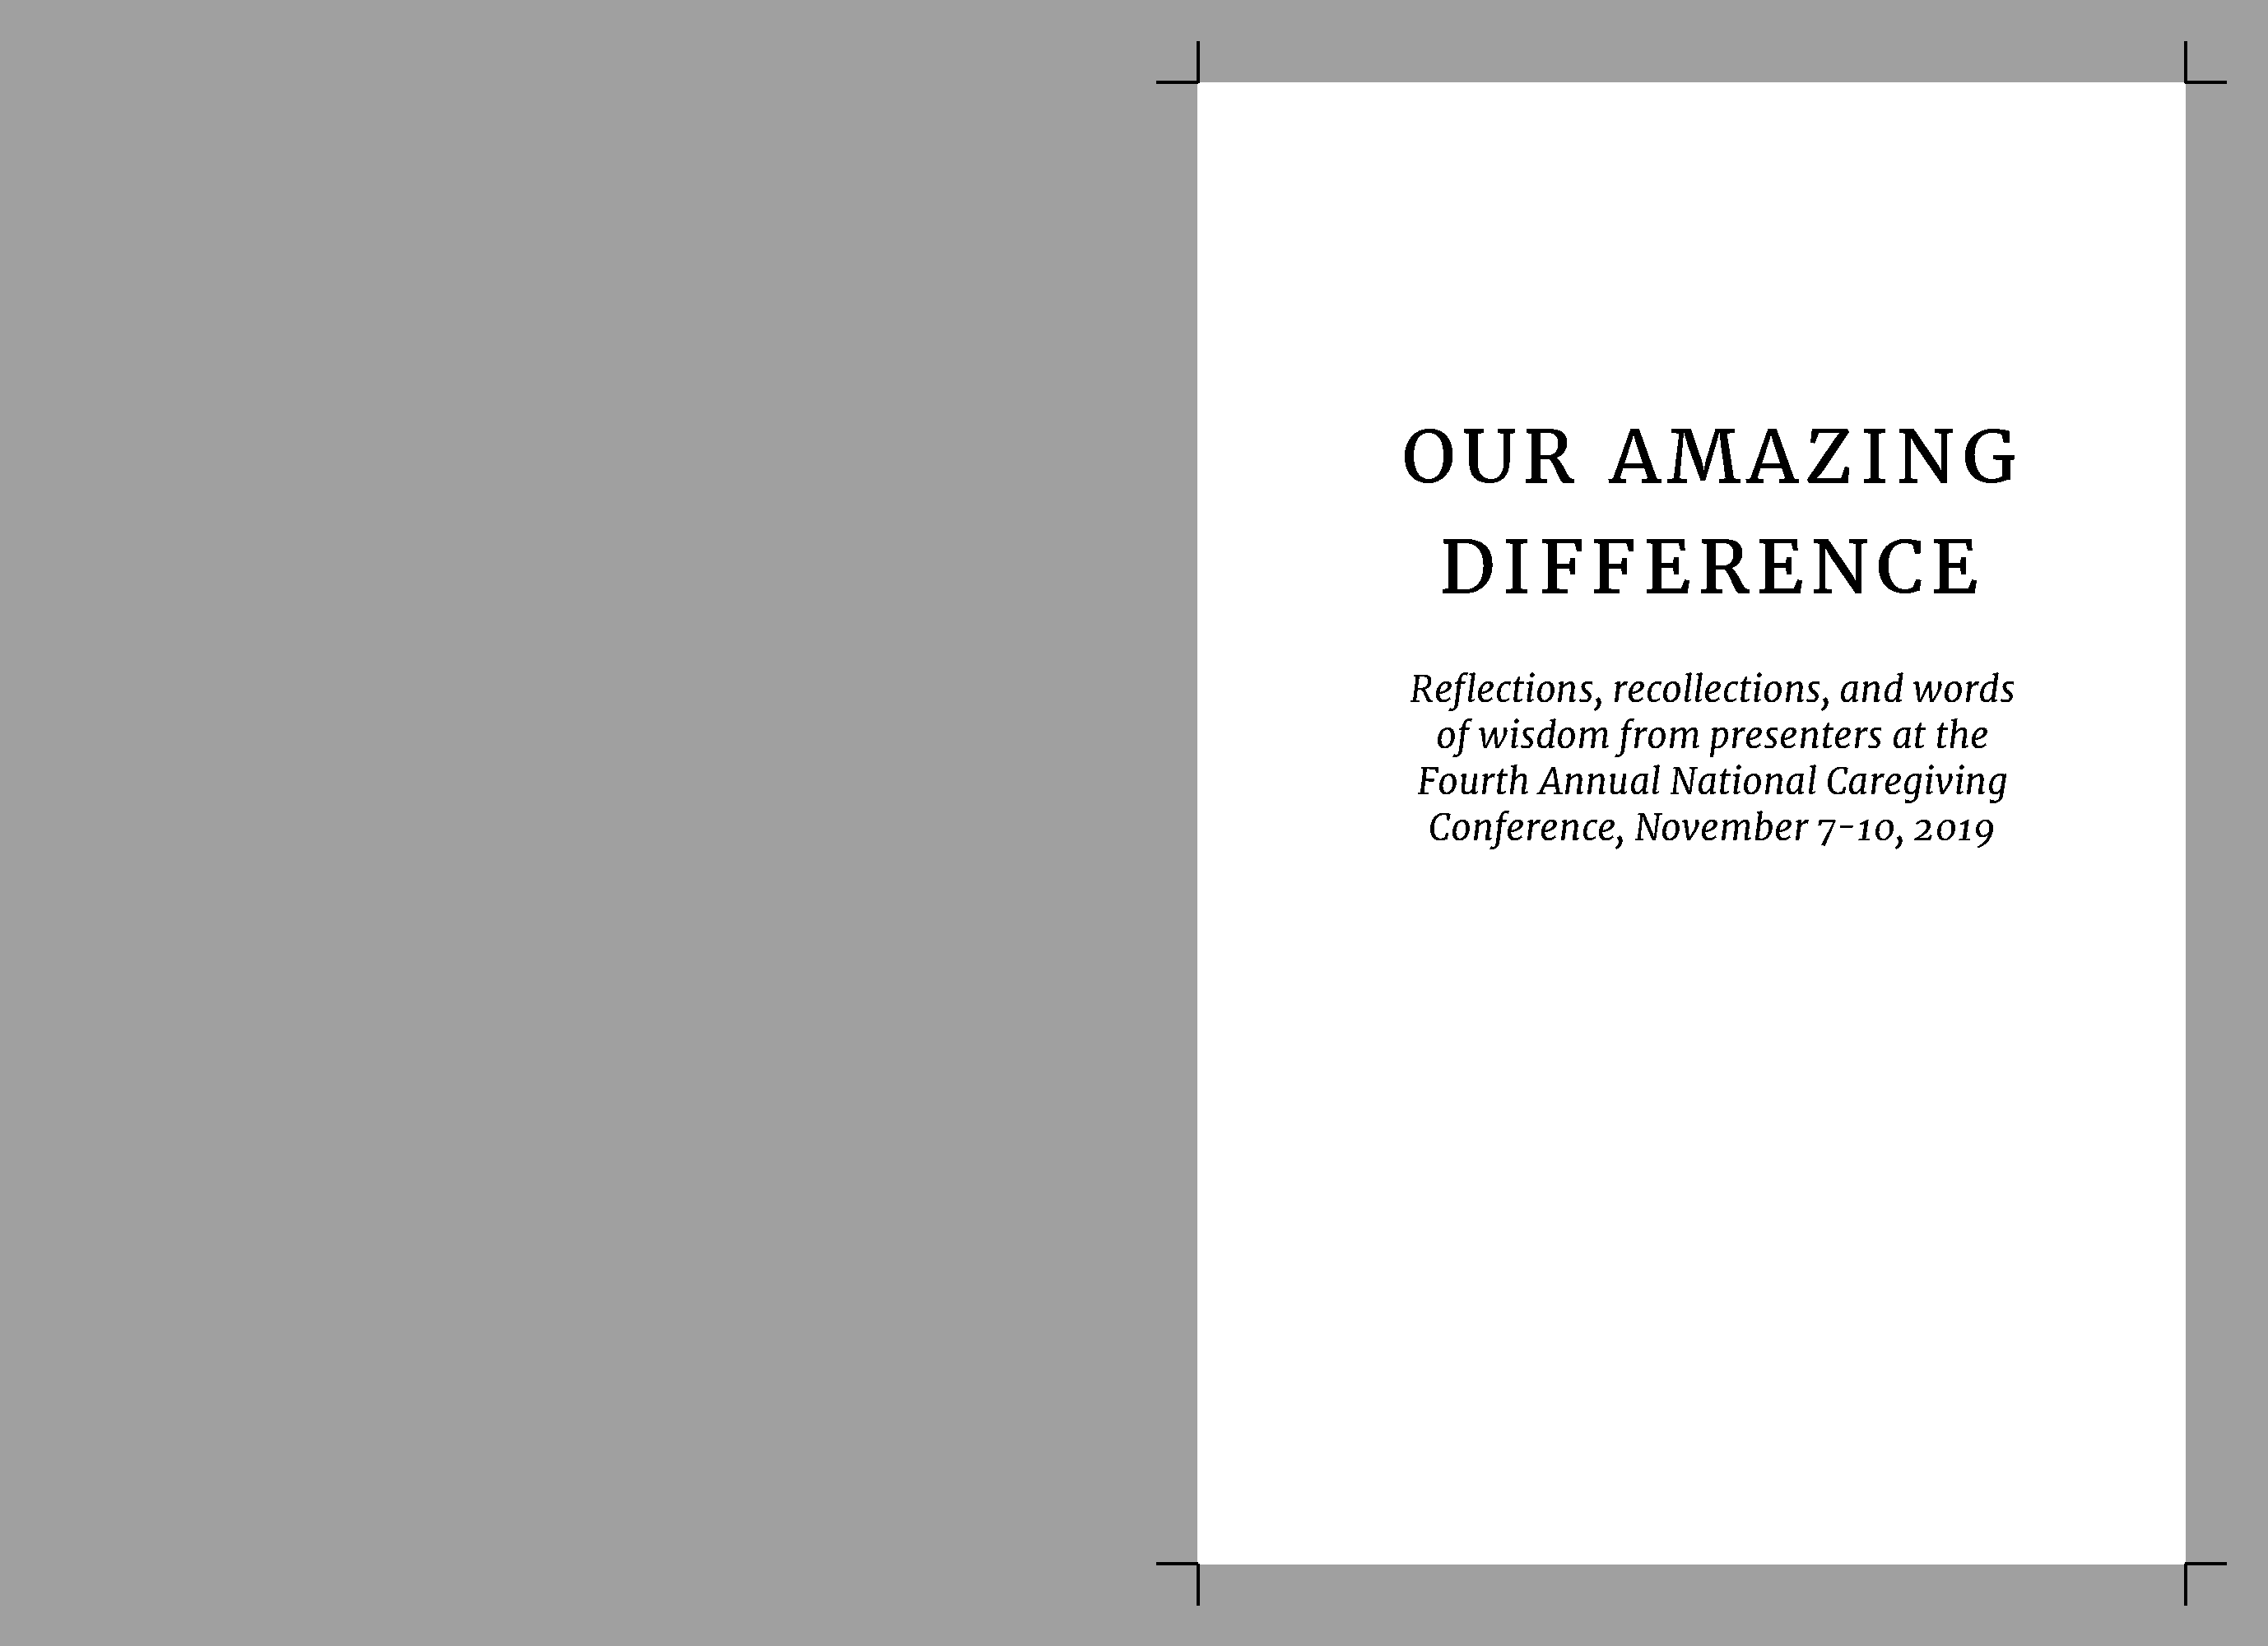 Our Amazing Difference Print book compilation